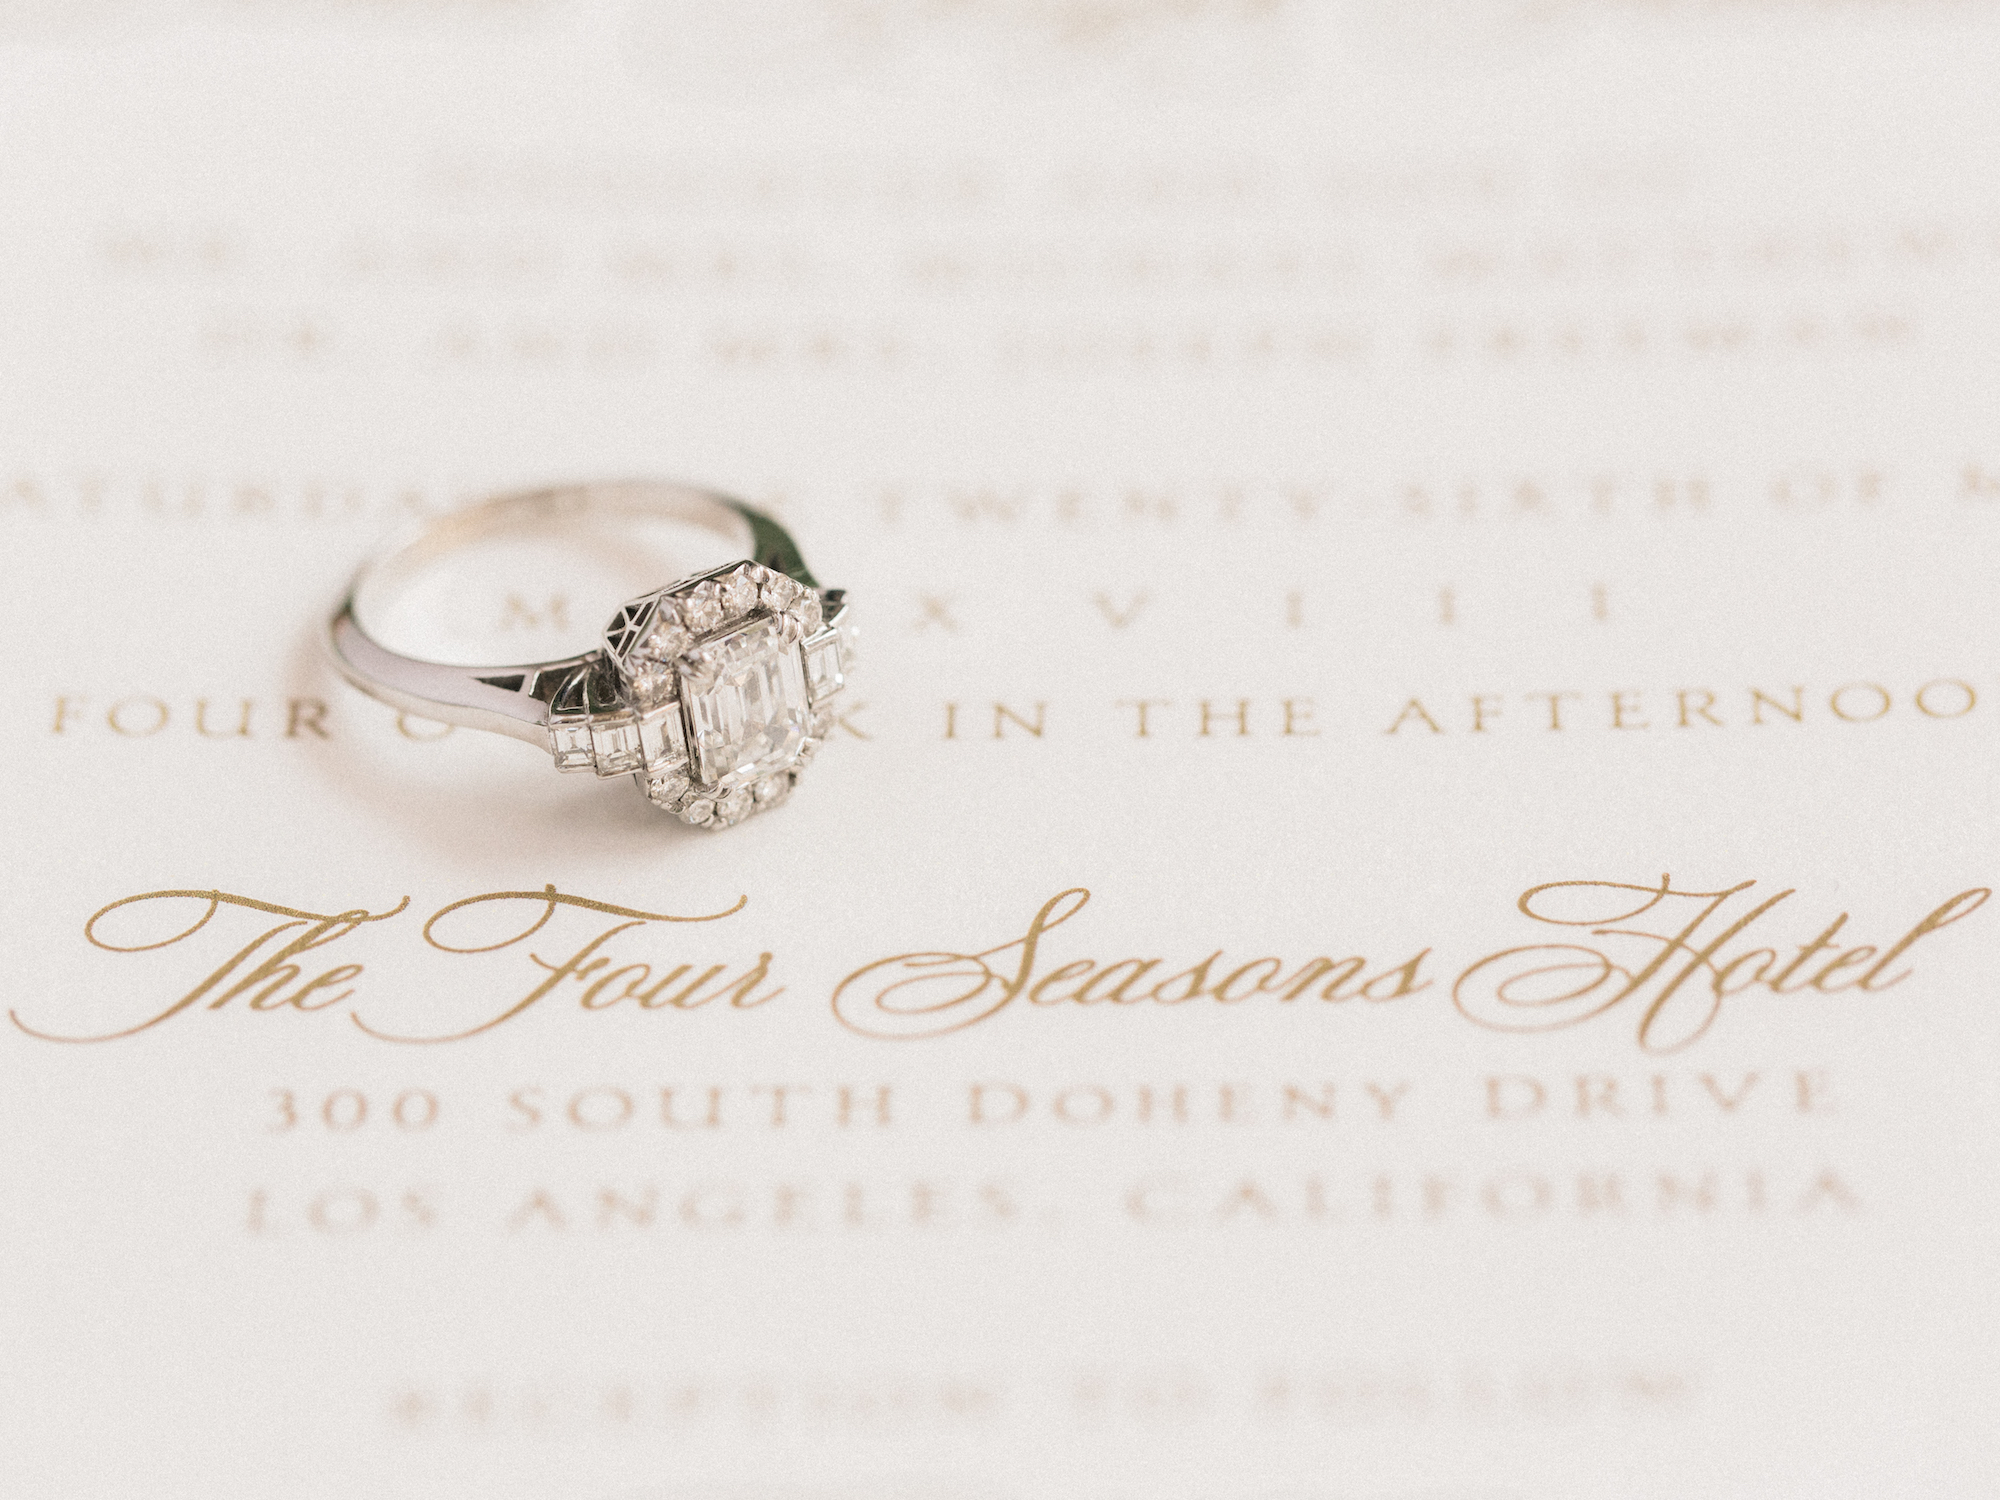 How To Take Care of your Wedding Ring Scout Mandolin